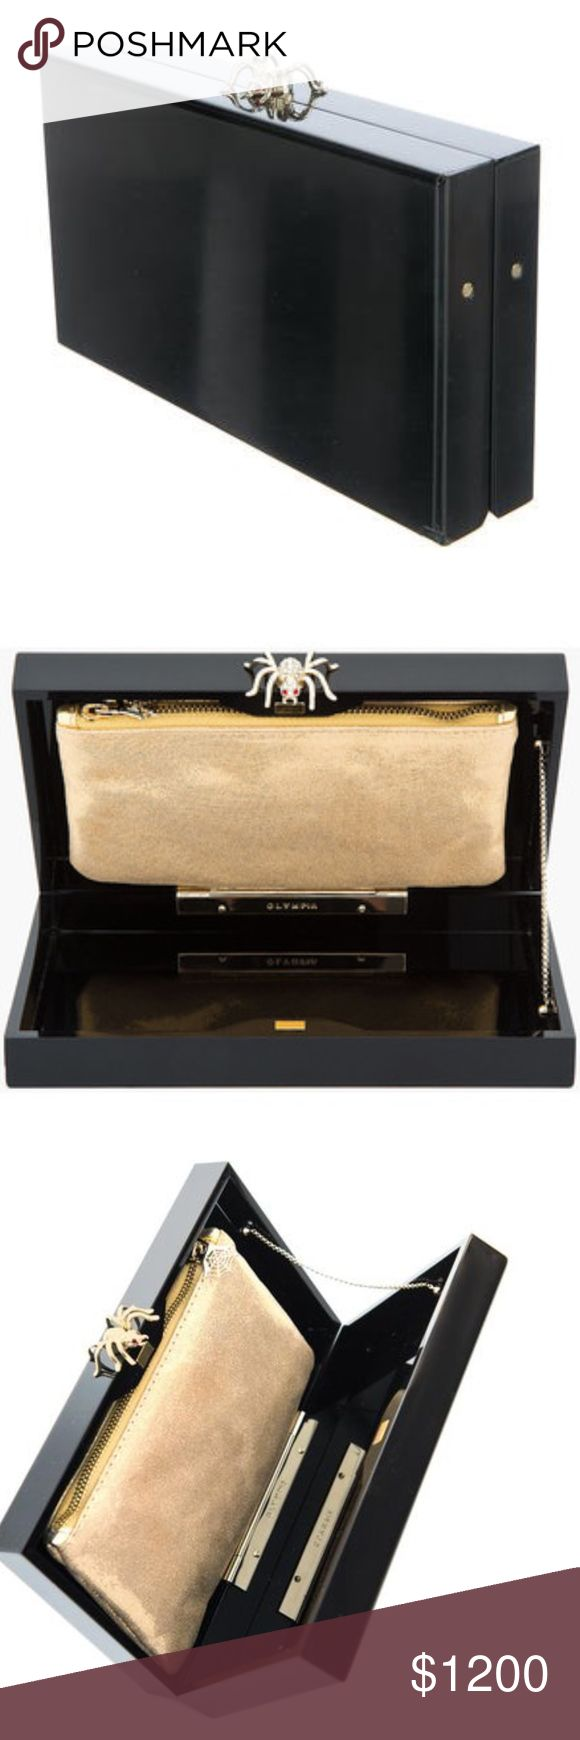 Charlotte Olympia Pandora Black Perspex Clutch Charlotte Olympia Pandora Black Perspex Clutch Rhinestone Spider Magnetic Closure Gold Fabric Pouch Insert Goldstone Hardware Come With Box Duster and Care Card. Measures 7.5 x 4.25 x 1.5 Made in Italy Charlotte Olympia Bags Clutches & Wristlets